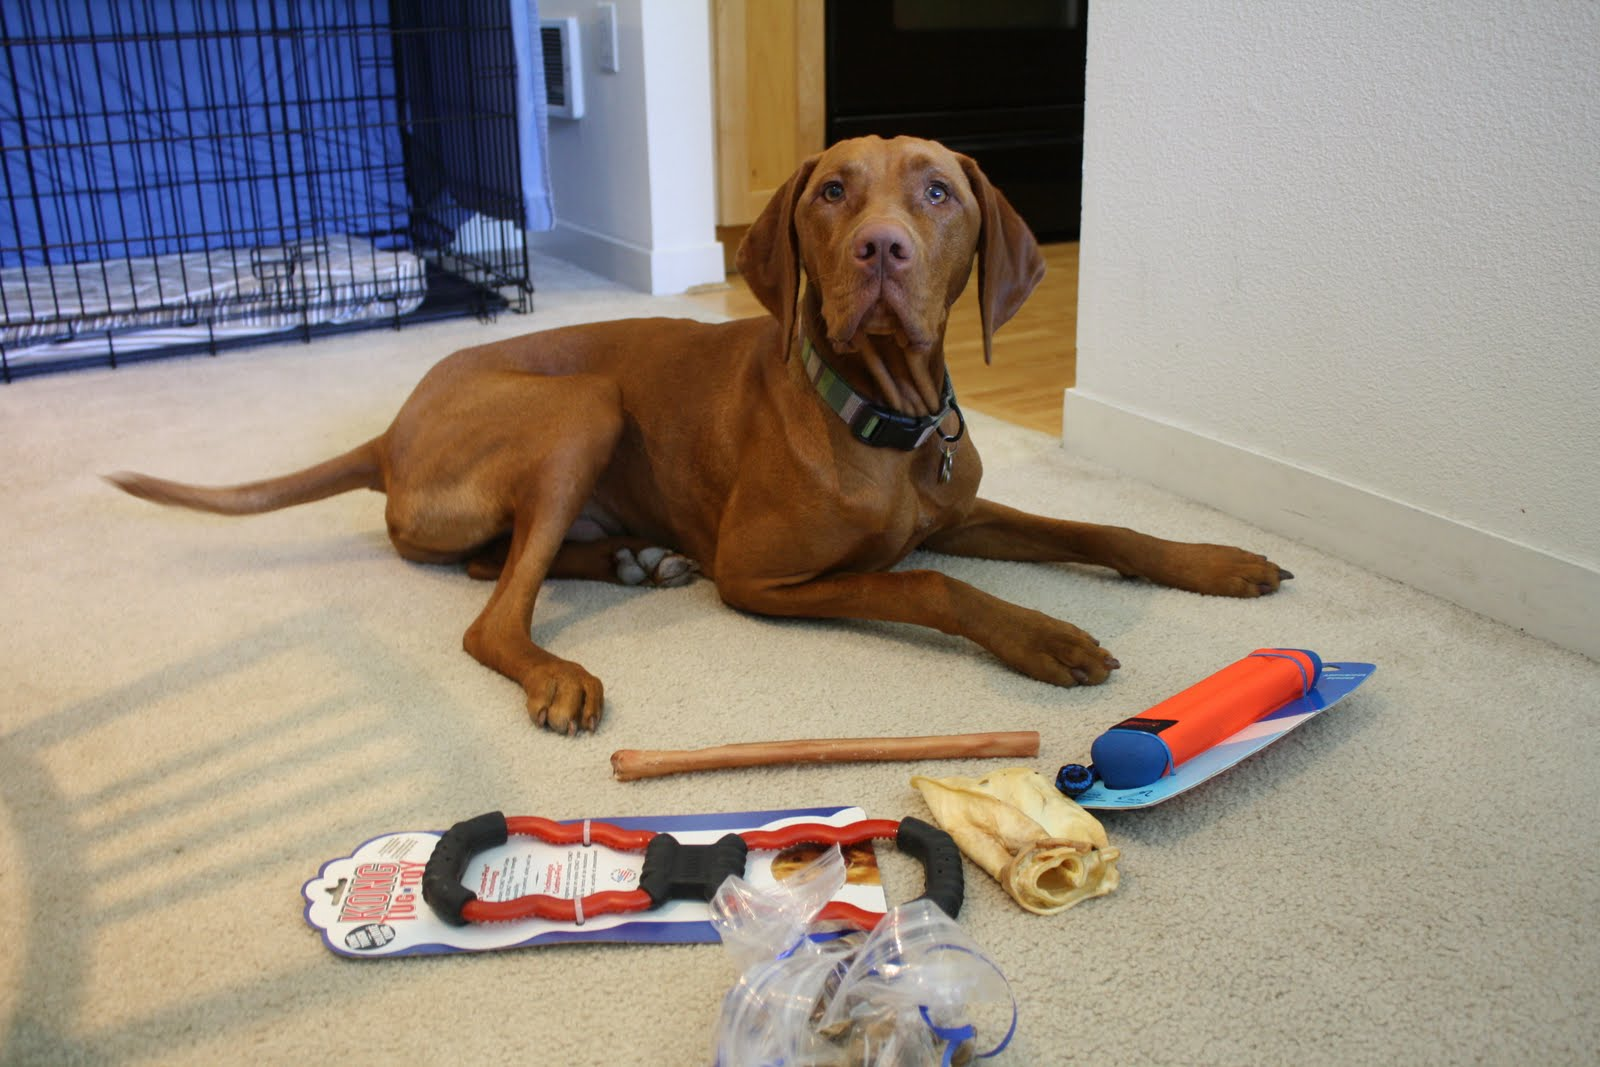 Weve Gotten A Bunch Of Questions About Gear We Use So Heres Post On Our Favorite Products Course These Arent Vizsla Specific Most Items